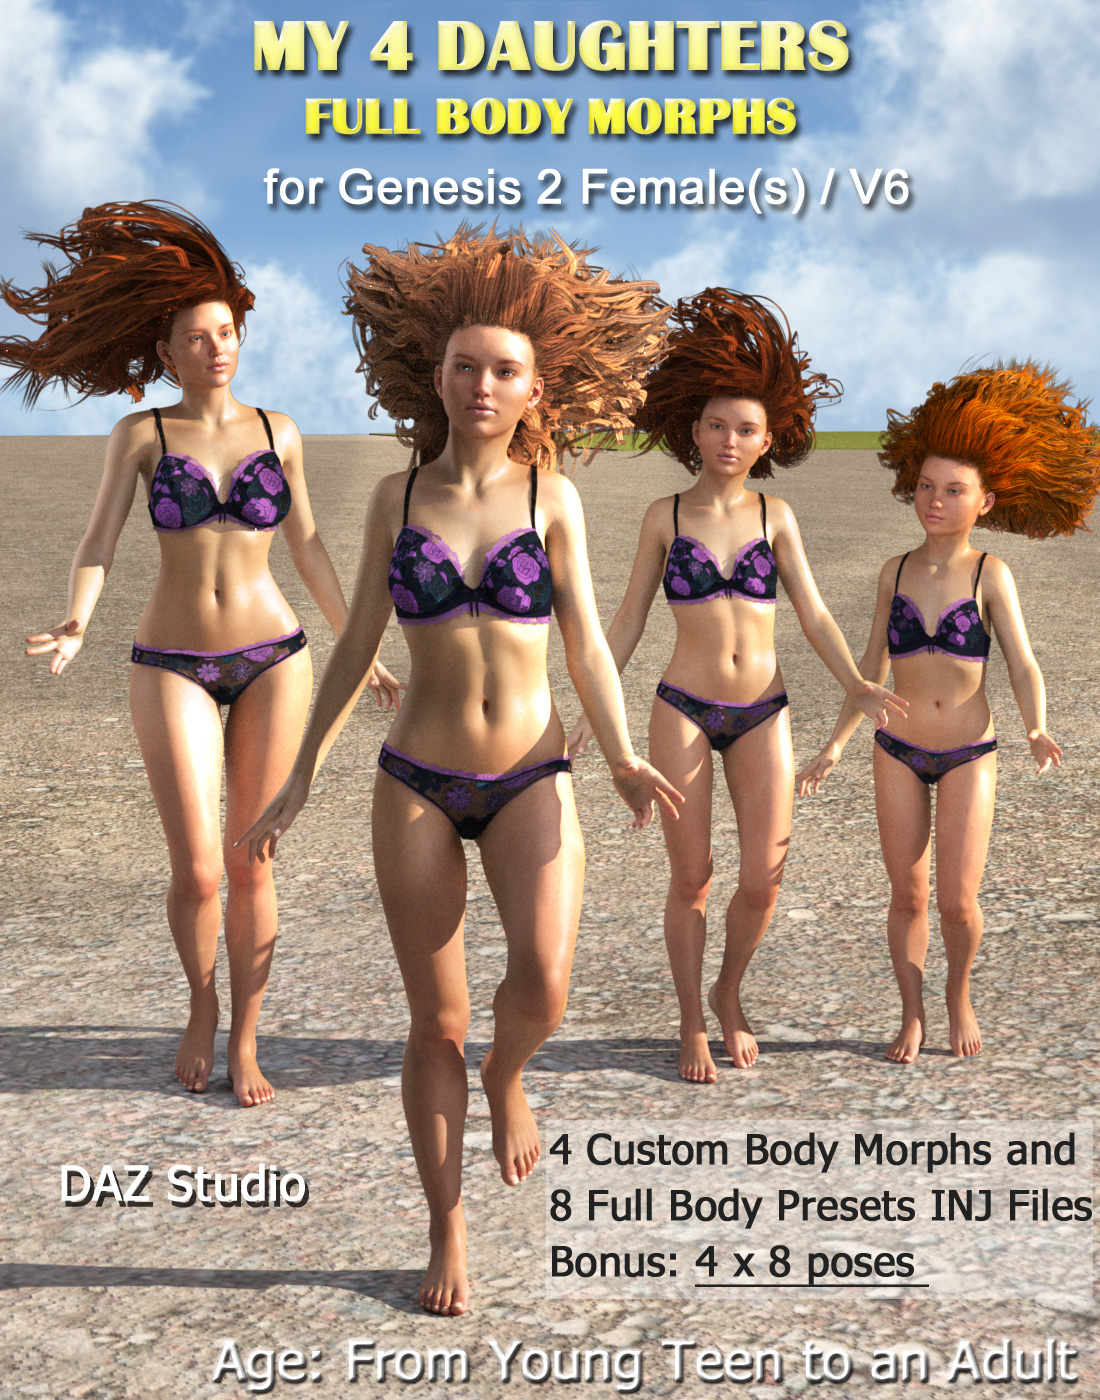 MY 4 DAUGHTERS - Full Body Morphs for G2F/ V6 by Mar3D